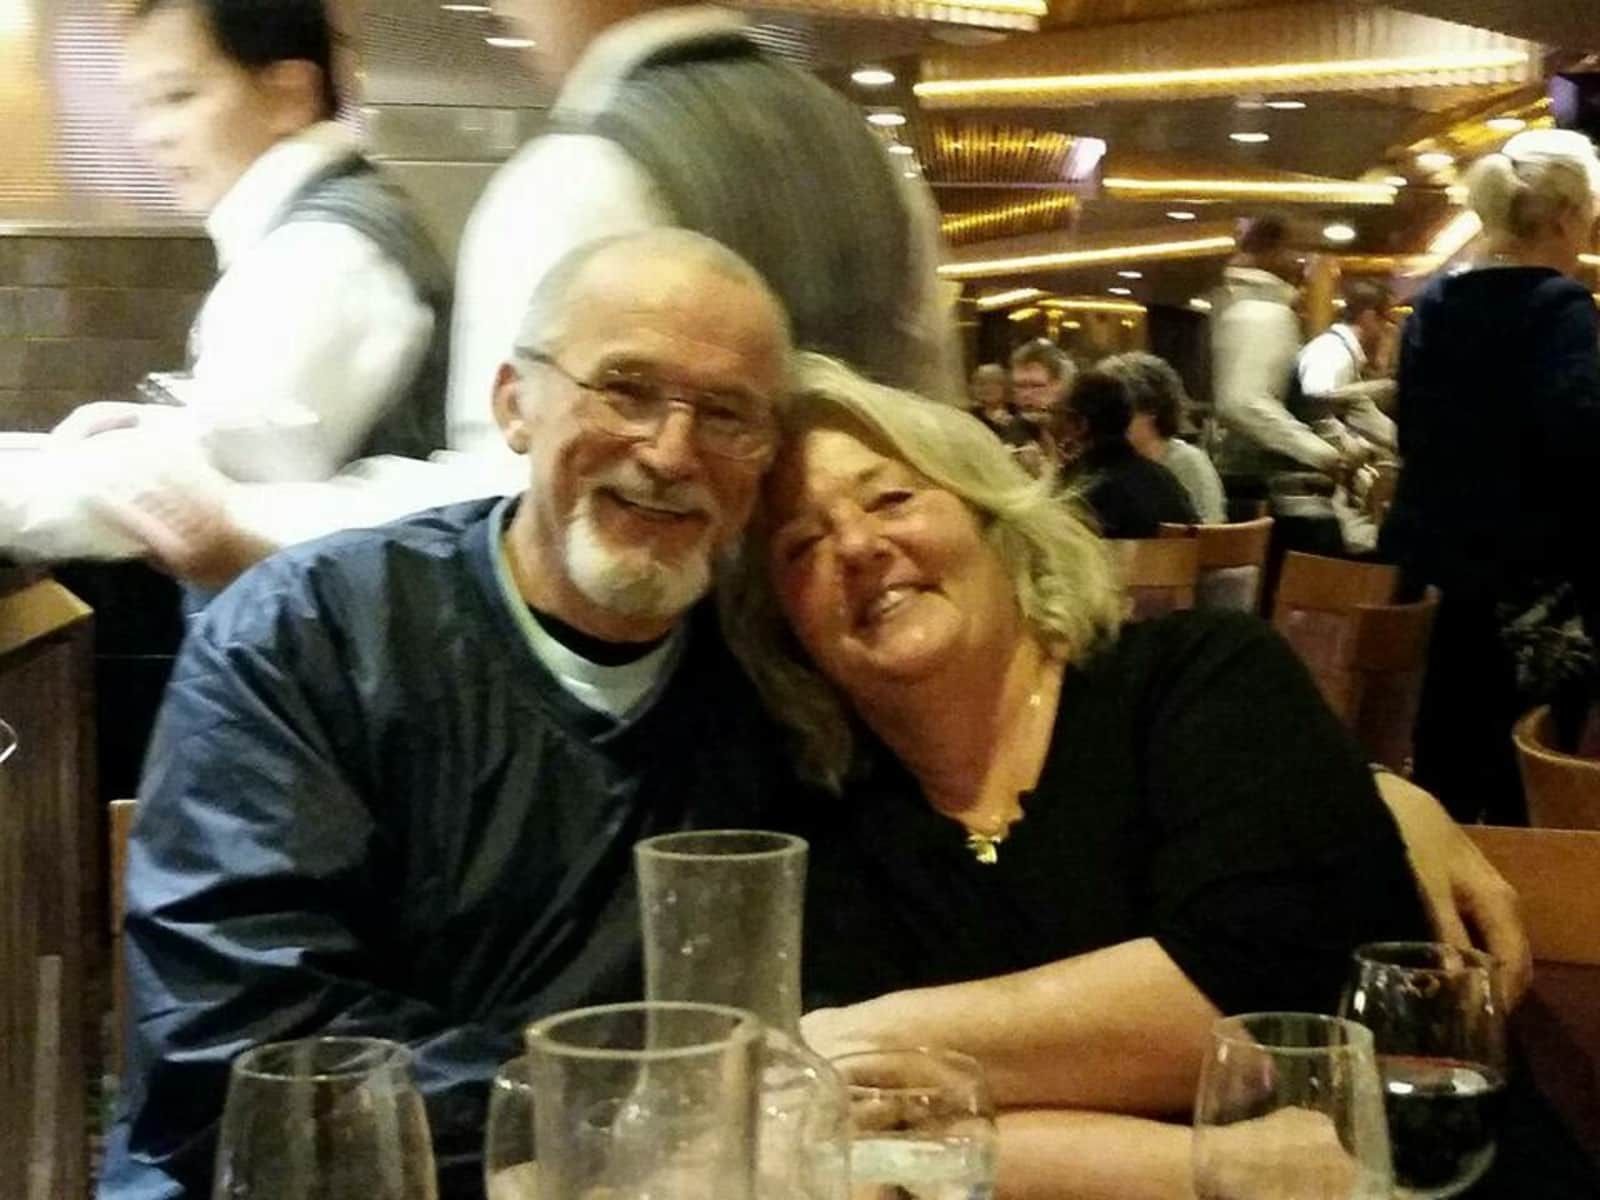 Susan & Robert from San Diego, California, United States